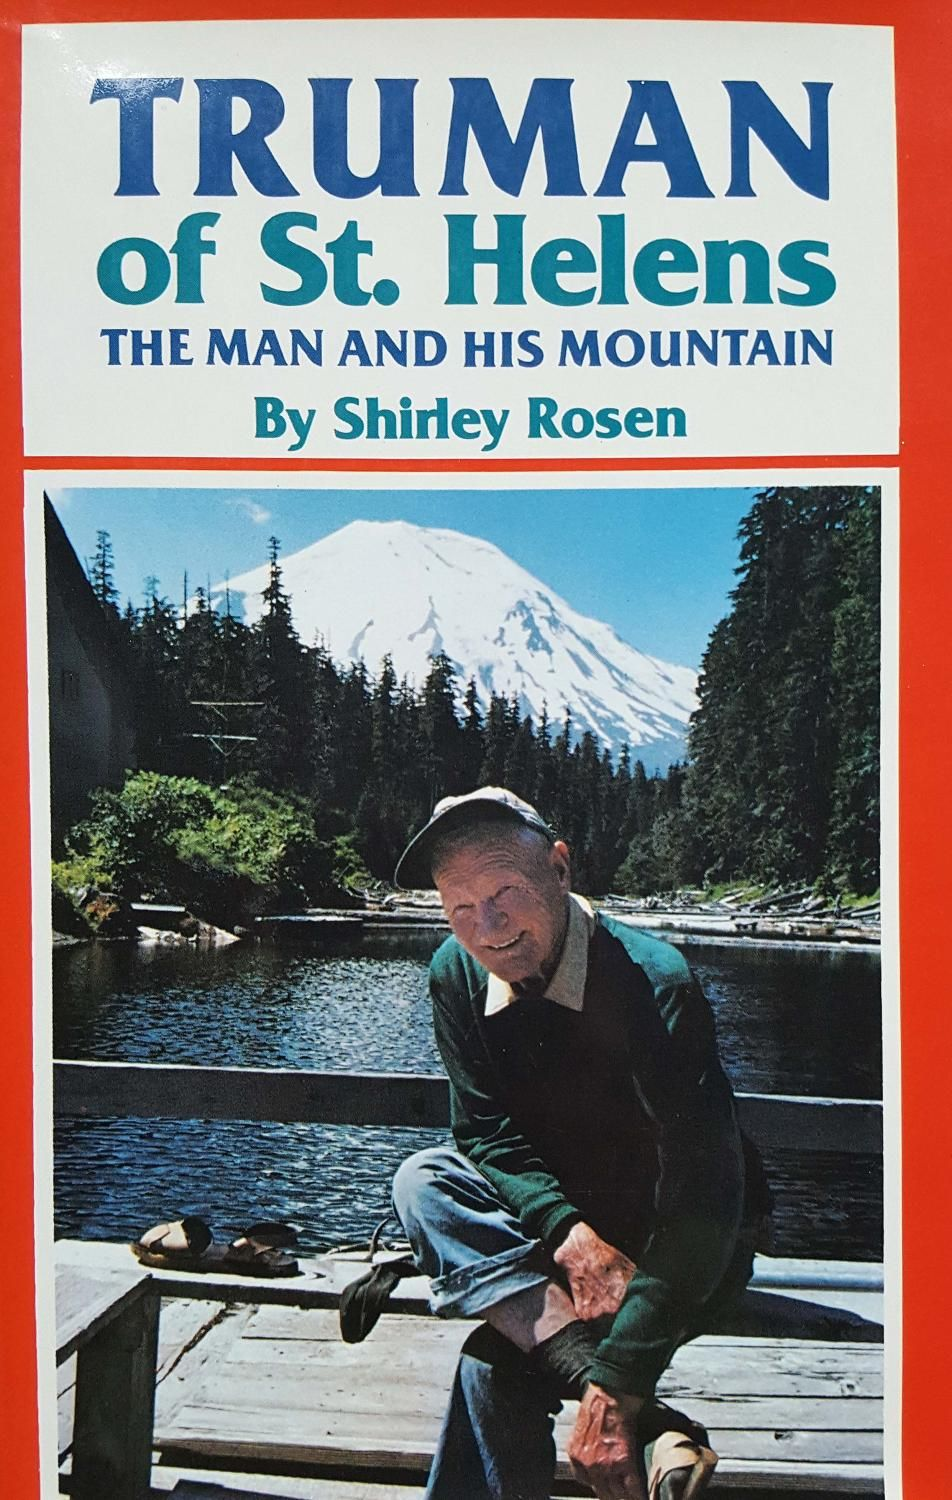 Truman of St. Helens, The Man and His Mountain